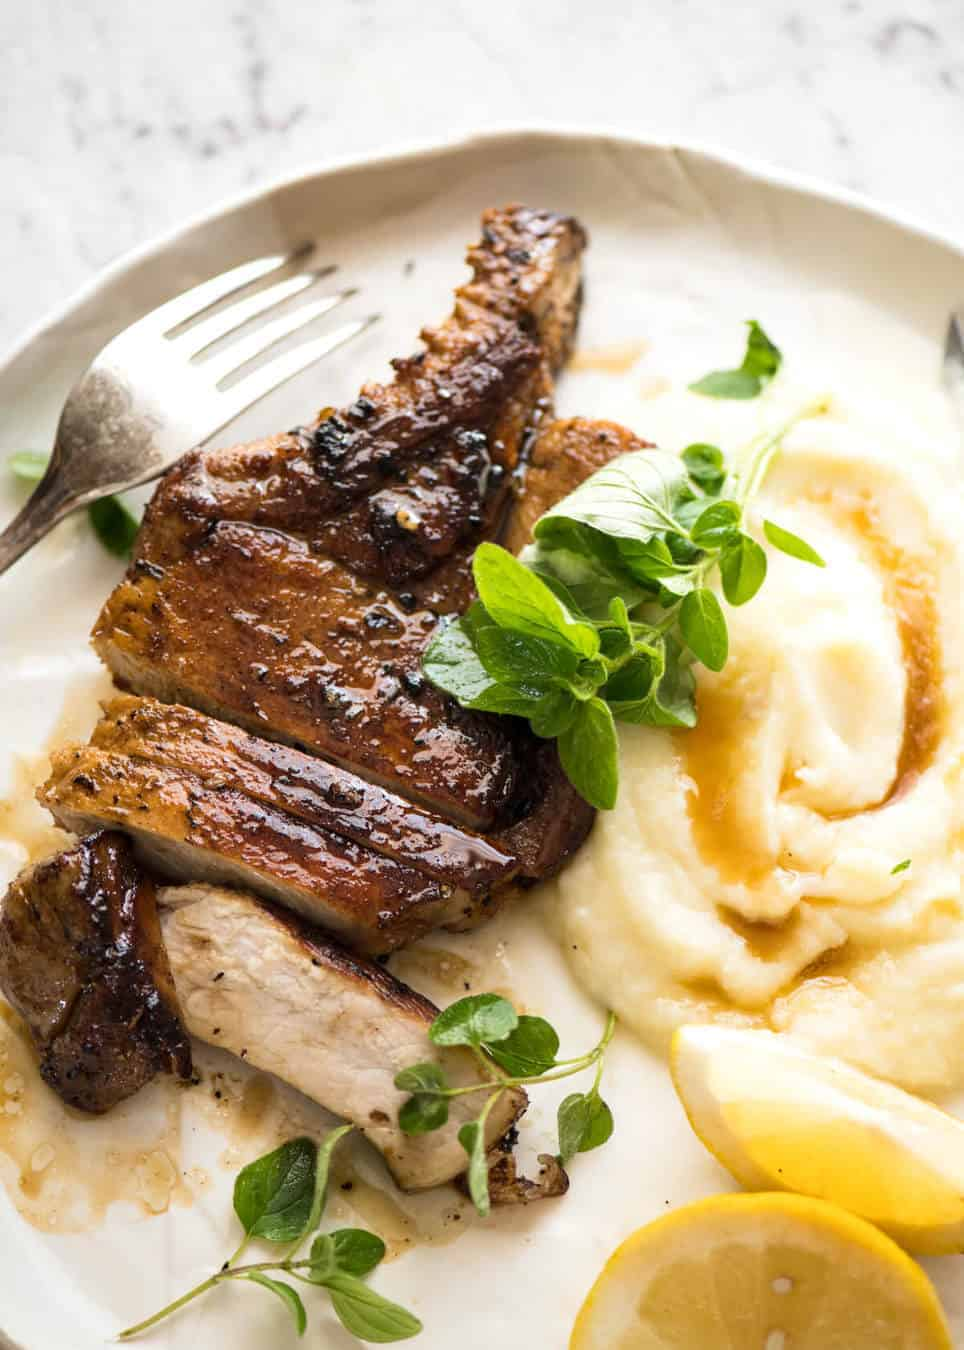 Lemon Garlic Marinated Grilled Pork Chops on a white plate with mashed potato on the side.